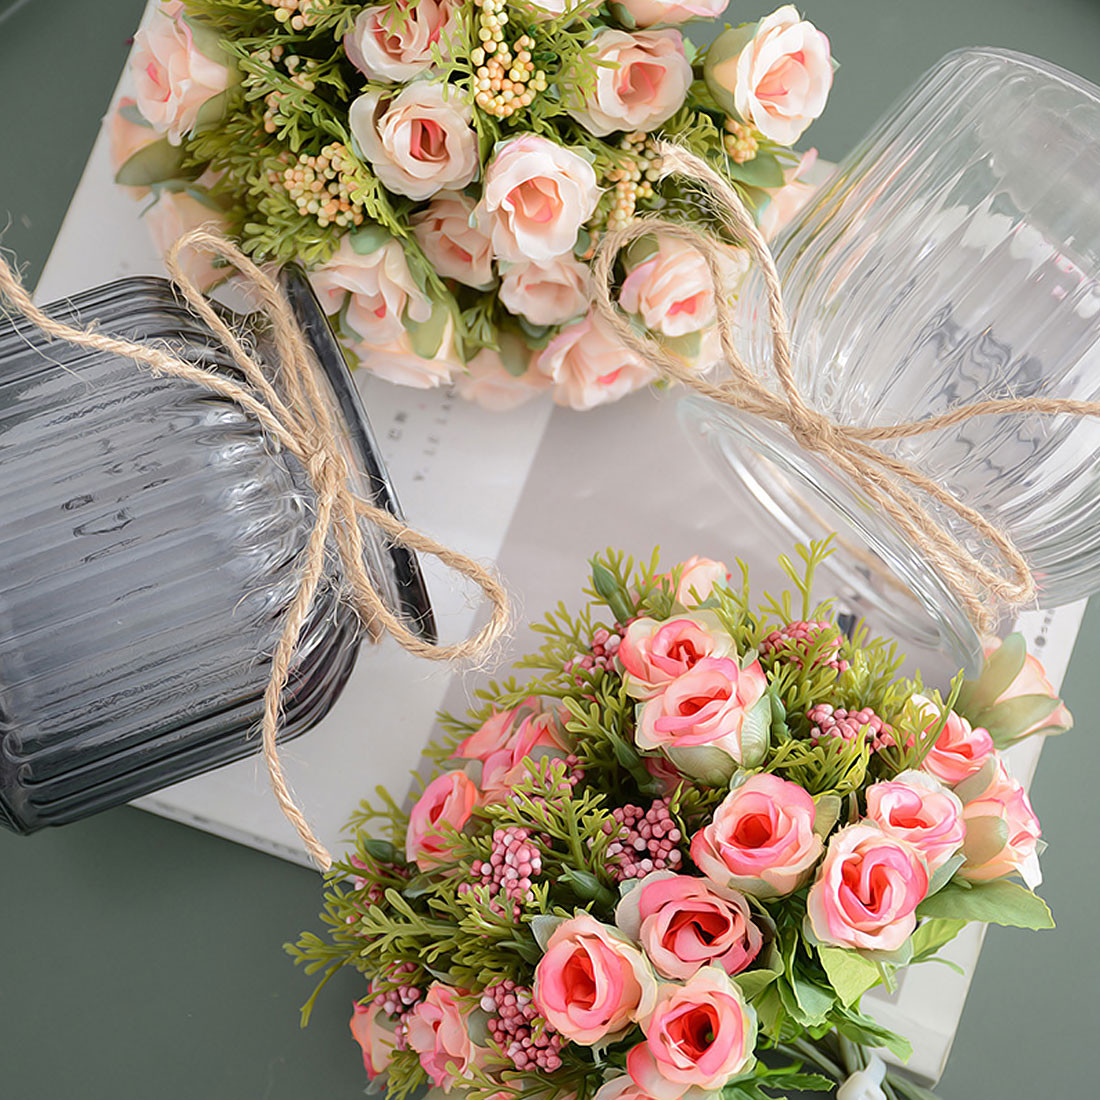 green leaves for vases of small bud silk roses simulation flowers artificial flowers 13 heads pertaining to total width20cm 1cm0 4 inch